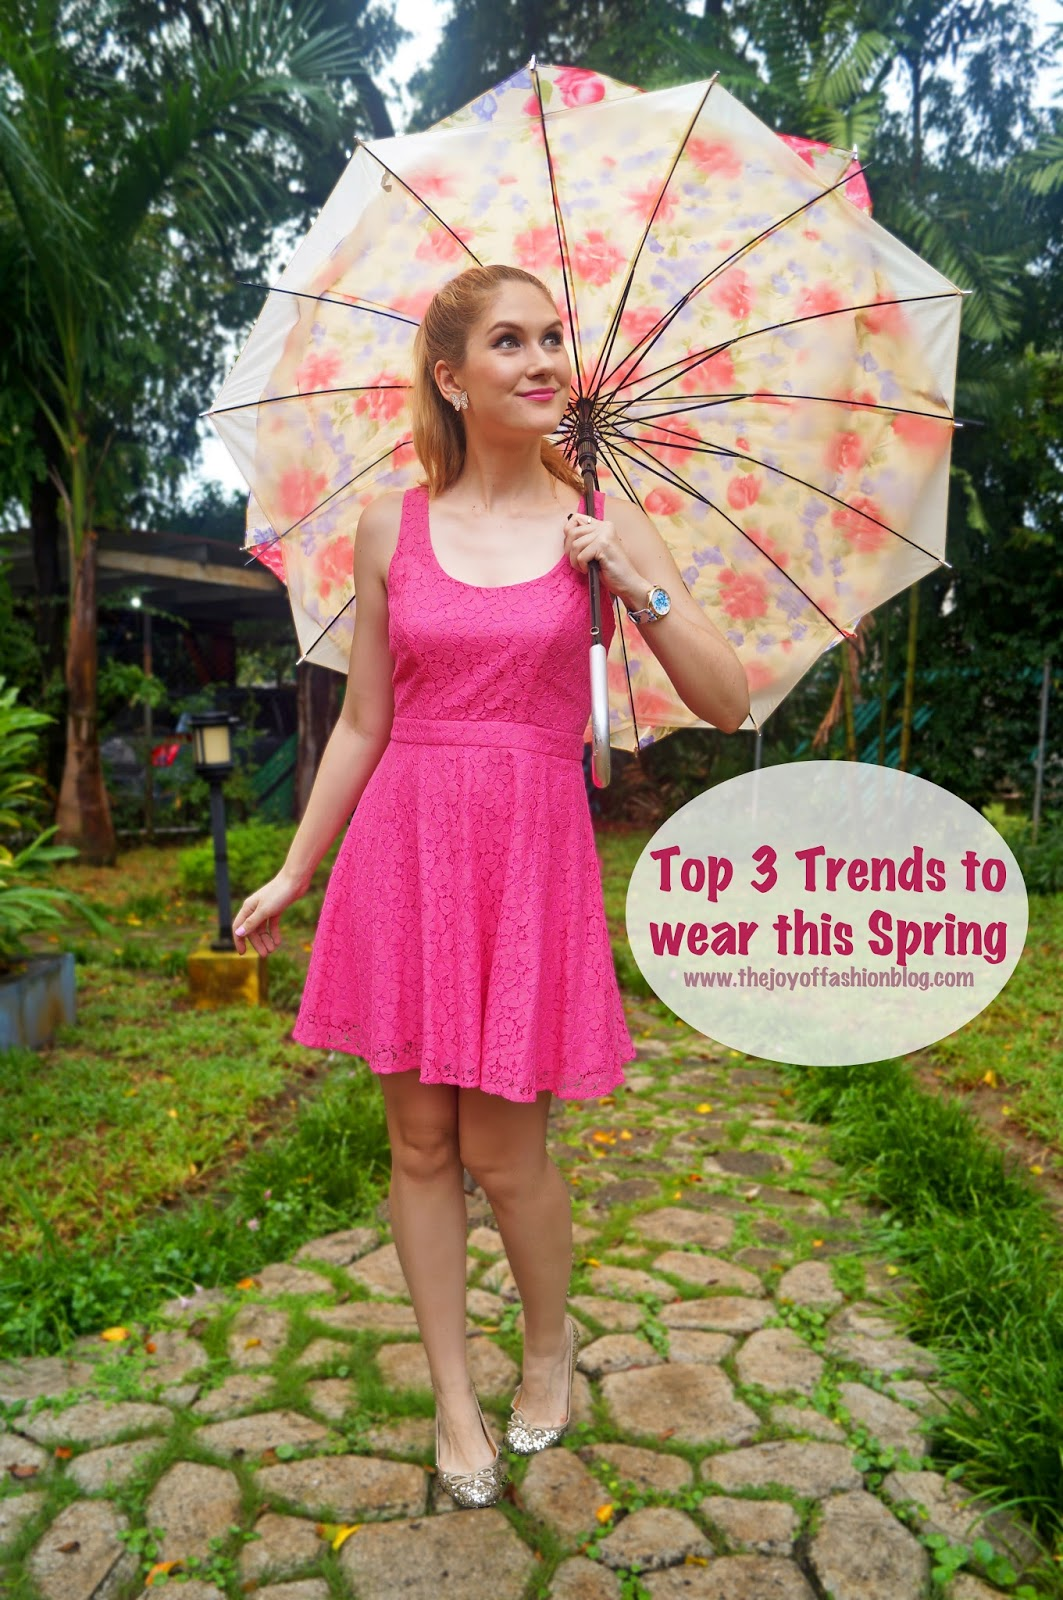 Top 3 trends to wear this Spring 2015!